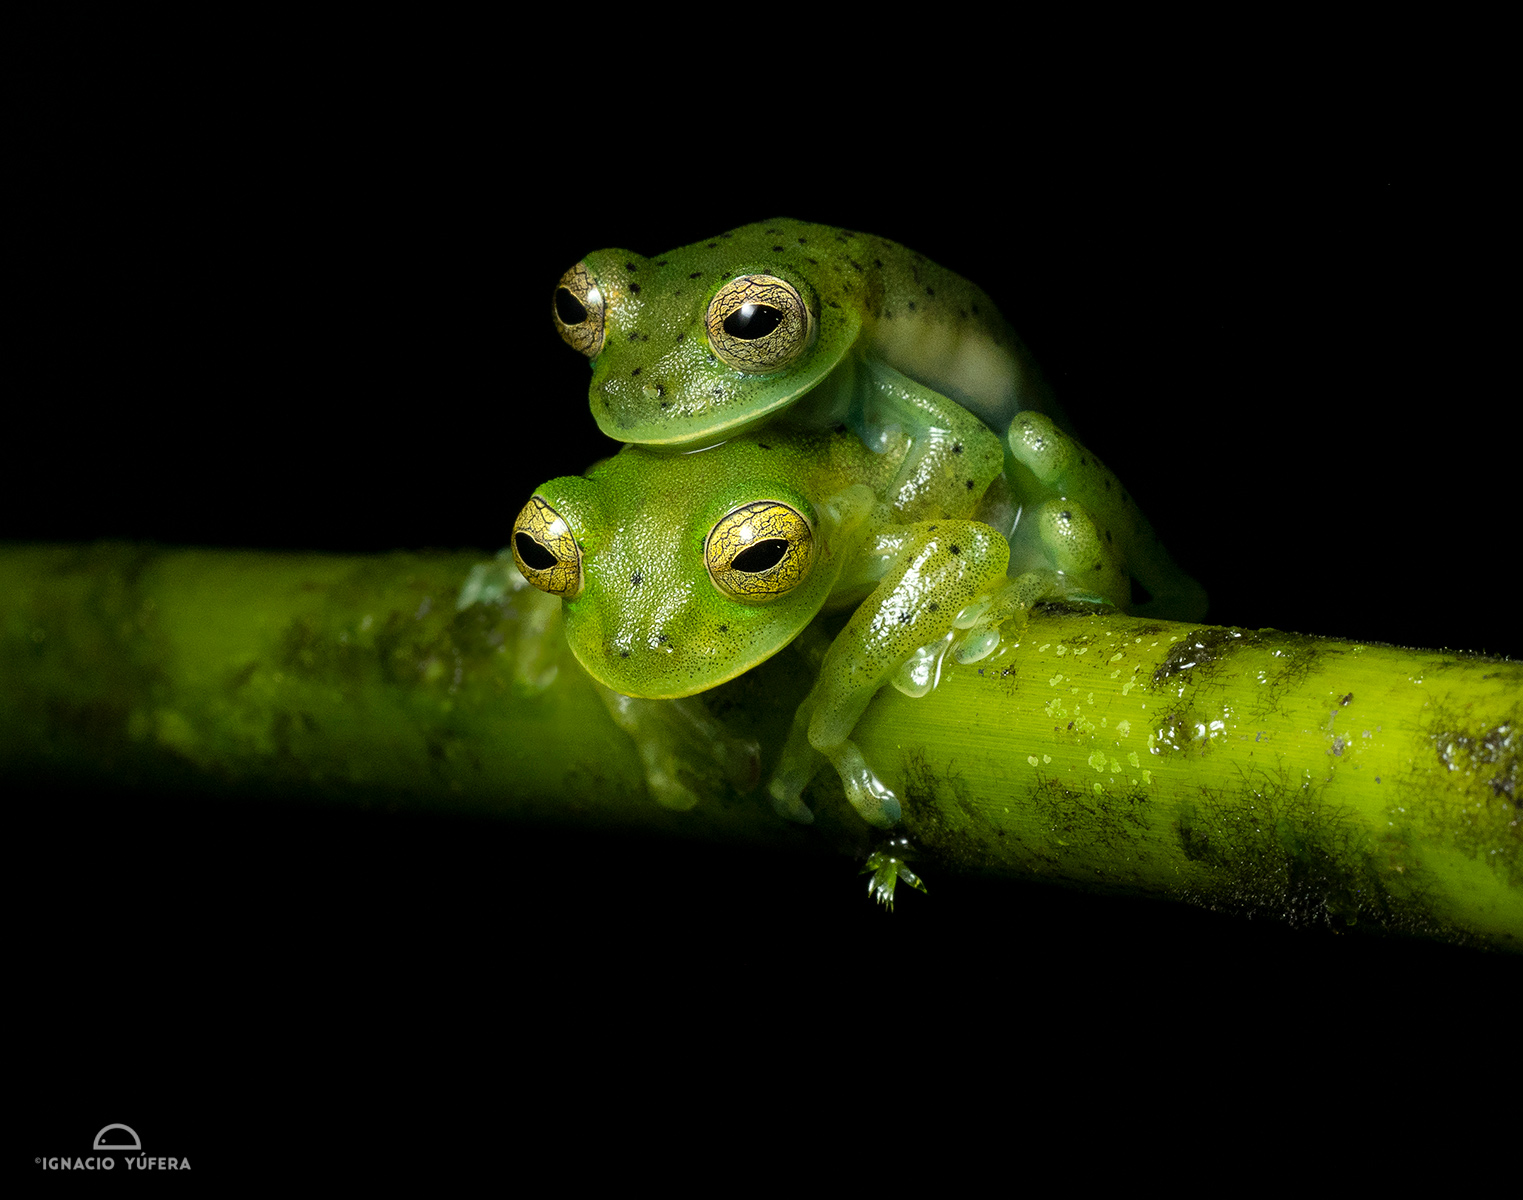 Emerald Glass Frog (Espadarana prosoblepon), pair in amplexus, Fortuna, Panama, June